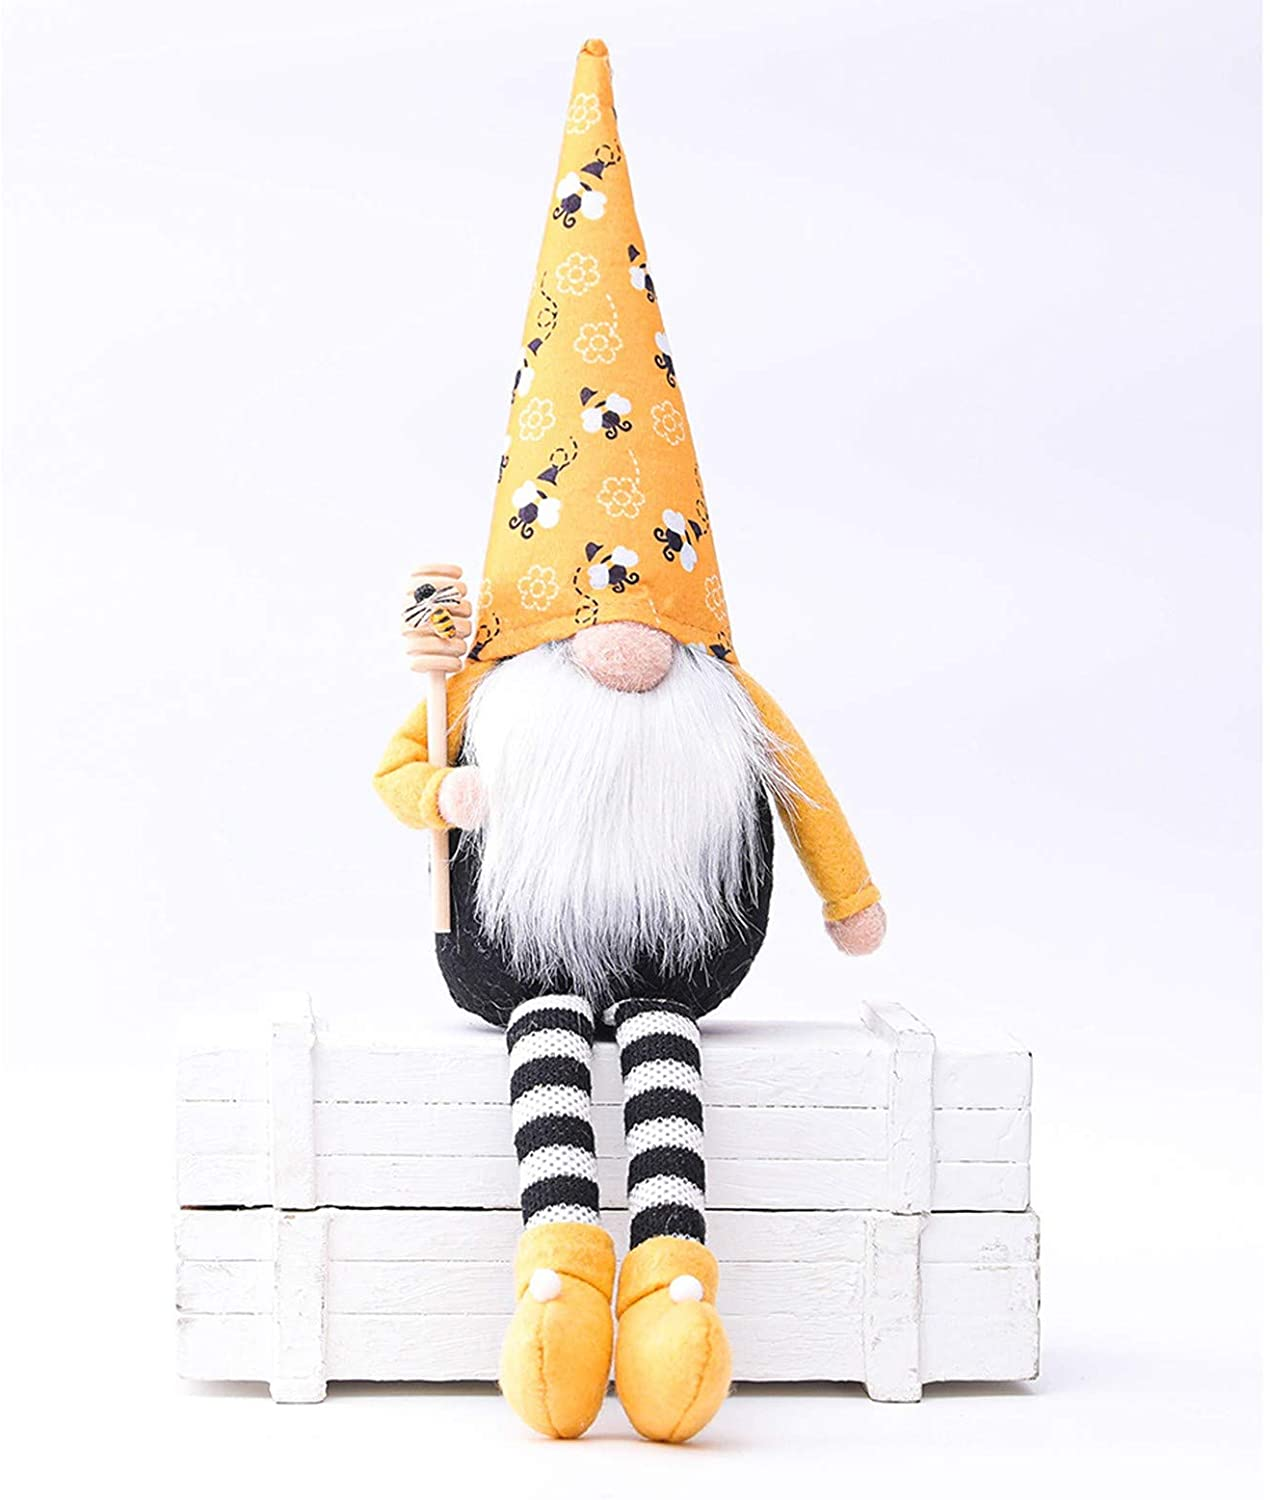 Max 44% OFF OLOPE Bumble Bee Faceless Cute Popular product Doll Scandi Striped